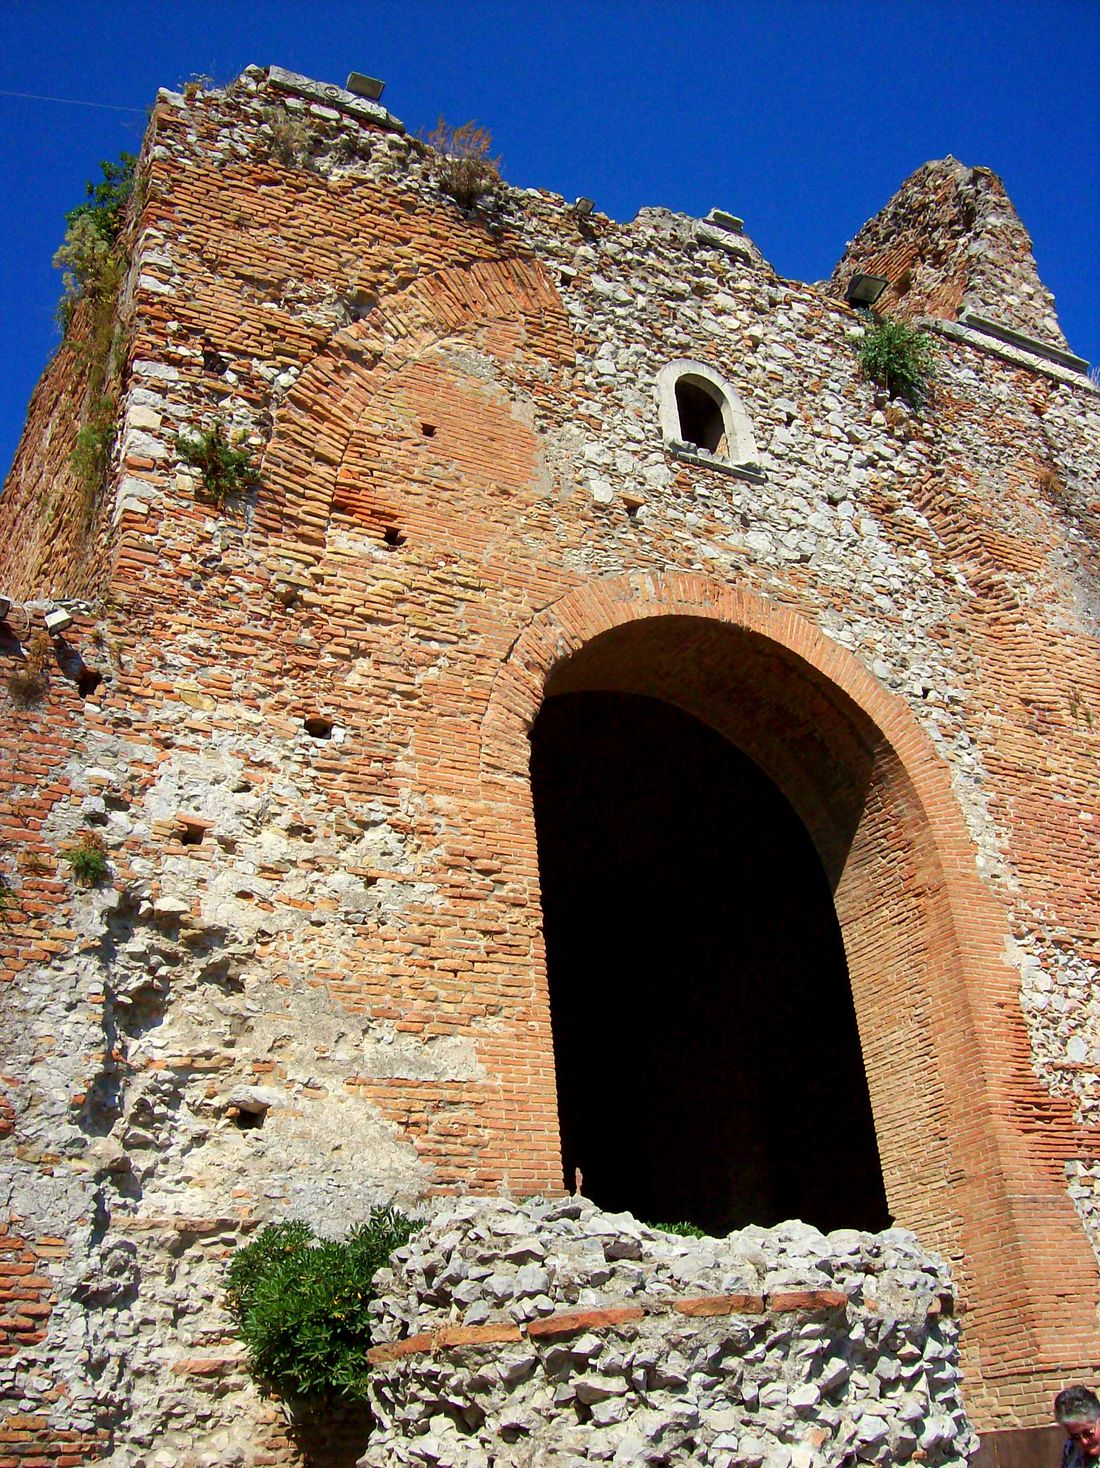 Arch Architecture Blue Building Exterior Built Structure Clear Sky Damaged Day Entrance Exterior Fortified Wall History Low Angle View Medieval Old Ruin Outdoors Ruined Sicily Stone Wall Sunny Taormina And Etna Teatro Antico Di Taormina The Past Tower Wall